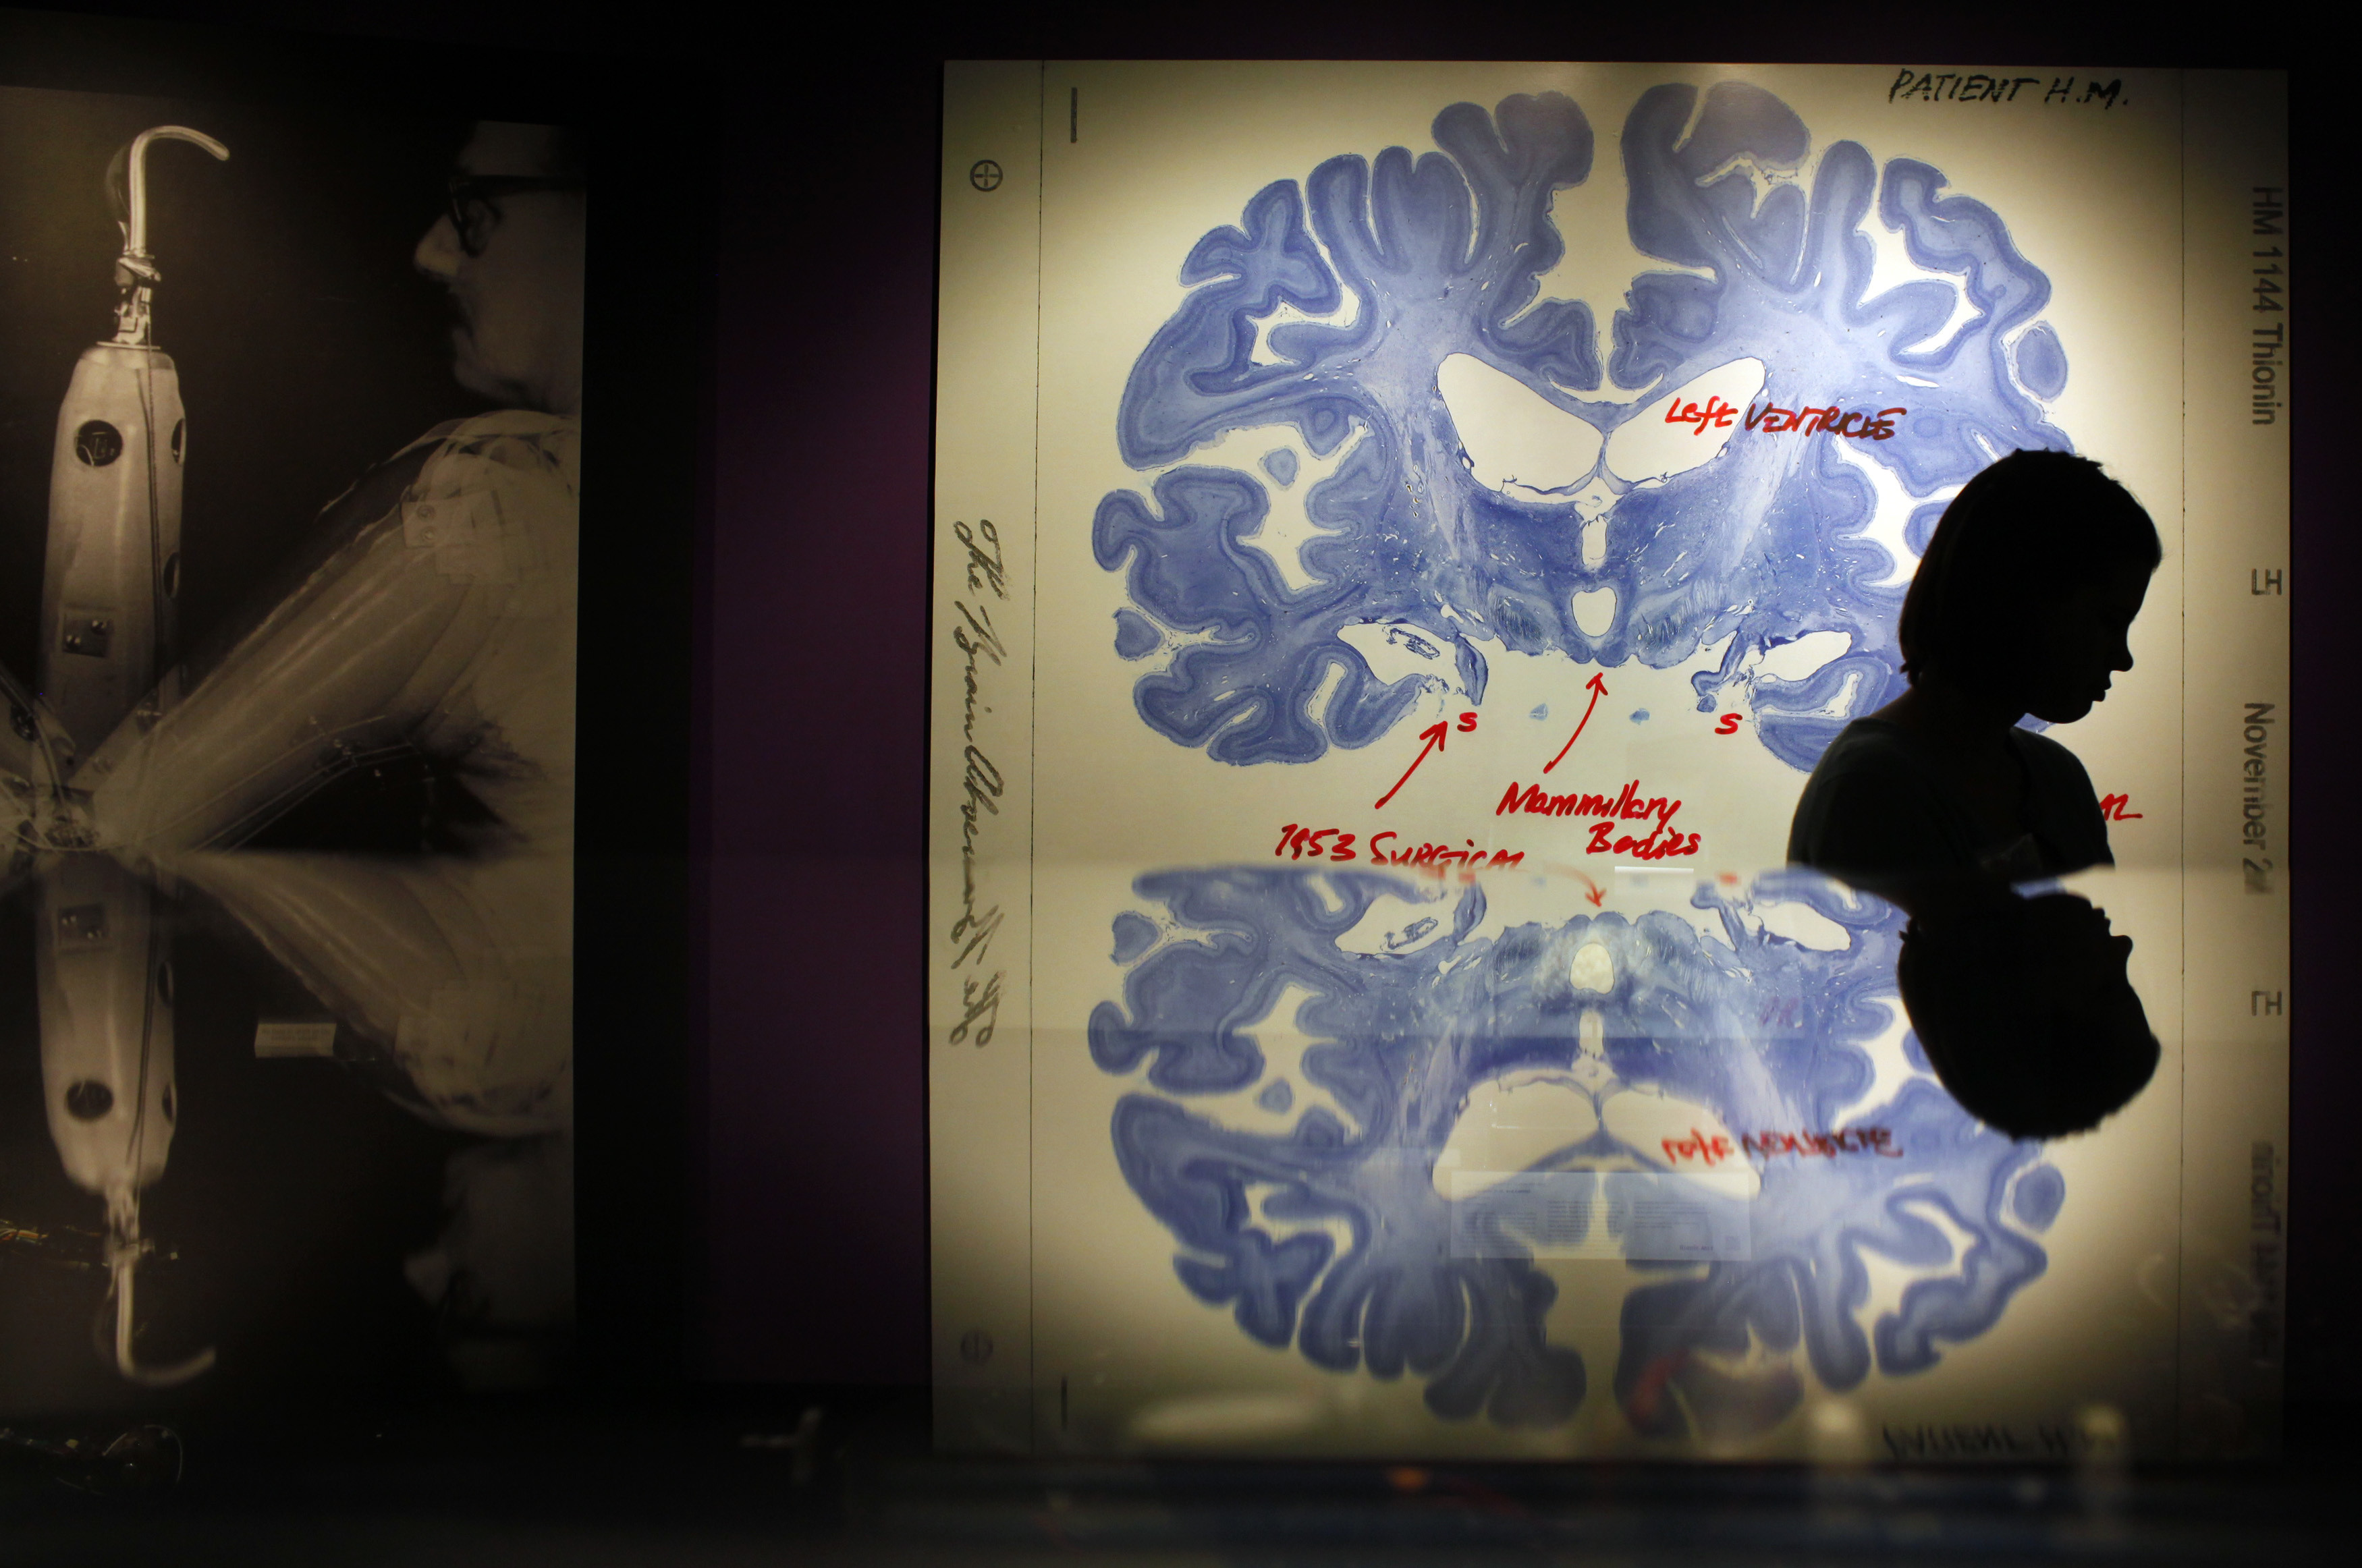 """A woman walks past a display of a brain slice of patient """"H.M."""" at the press preview for the MIT 150 Exhibition at the MIT Museum, celebrating Massachusetts Institute of Technology's 150 year anniversary, in Cambridge, Massachusetts January 7, 2011. Patient H.M. has been extensively studied because of his inability to form long term memories following brain surgery in 1953 for his epilepsy.   REUTERS/Brian Snyder    (UNITED STATES - Tags: SOCIETY EDUCATION BUSINESS ANNIVERSARY) - GM1E71806R501"""